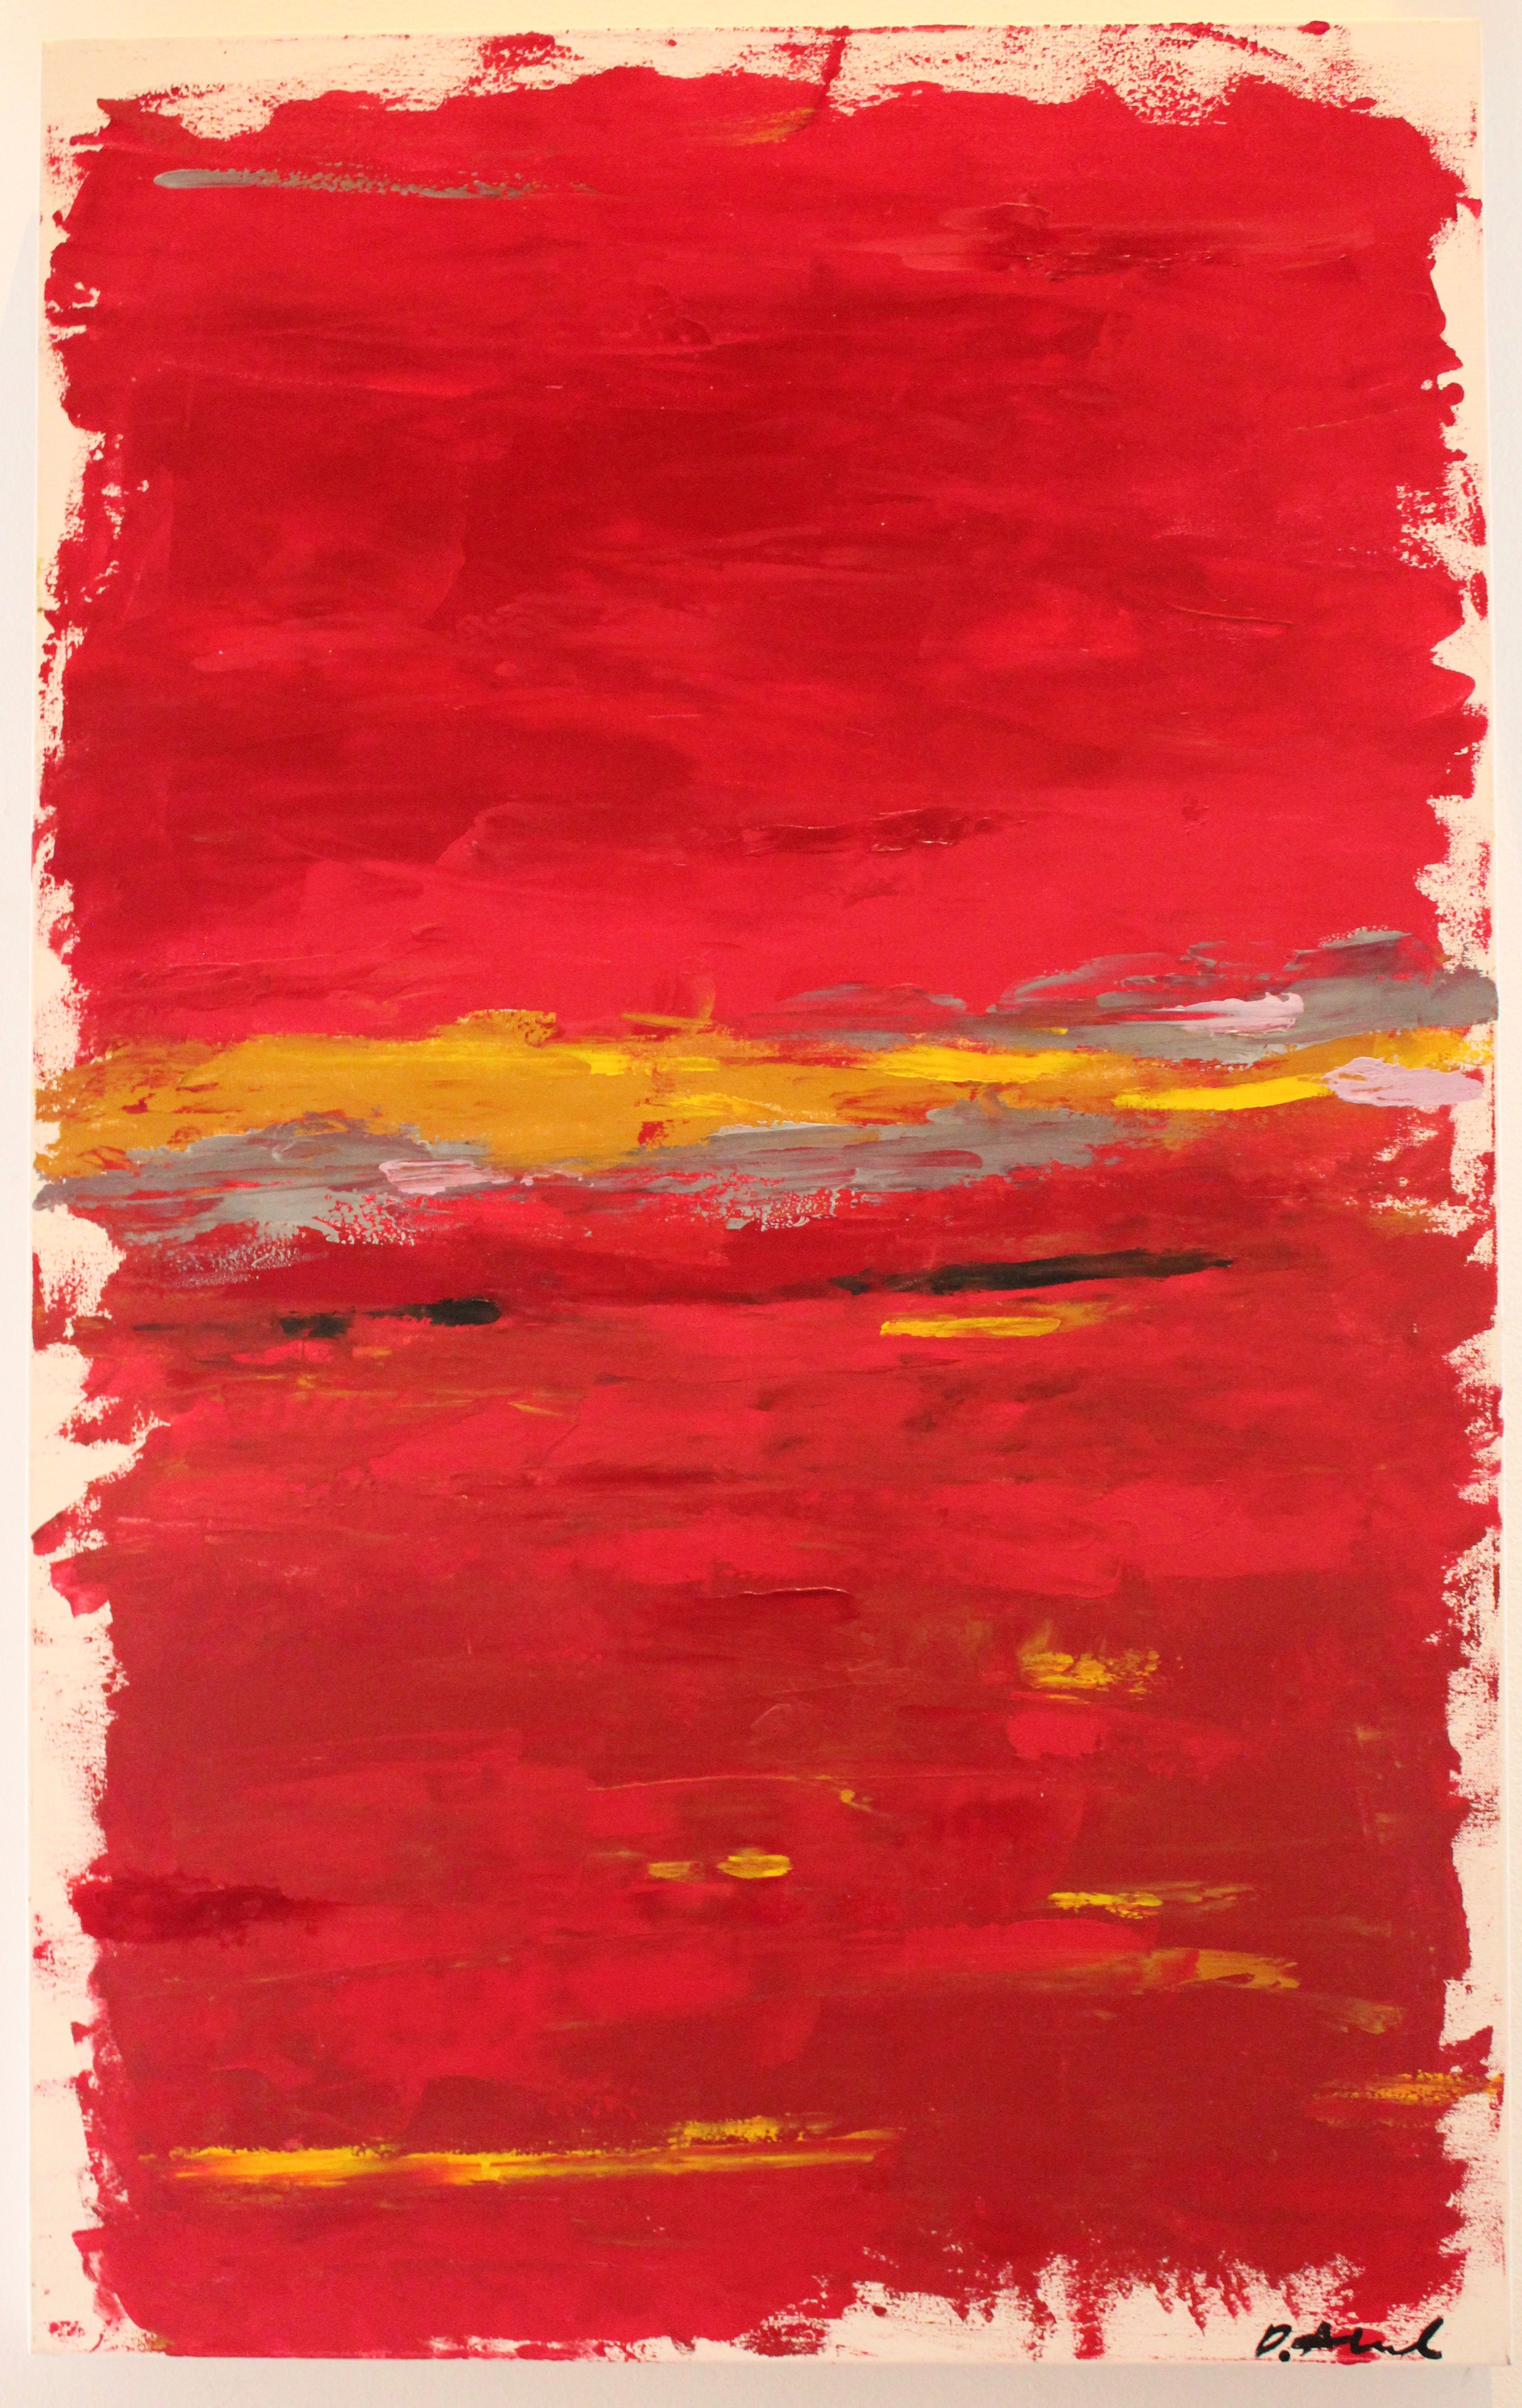 Red One artwork by Damian Alcock - art listed for sale on Artplode